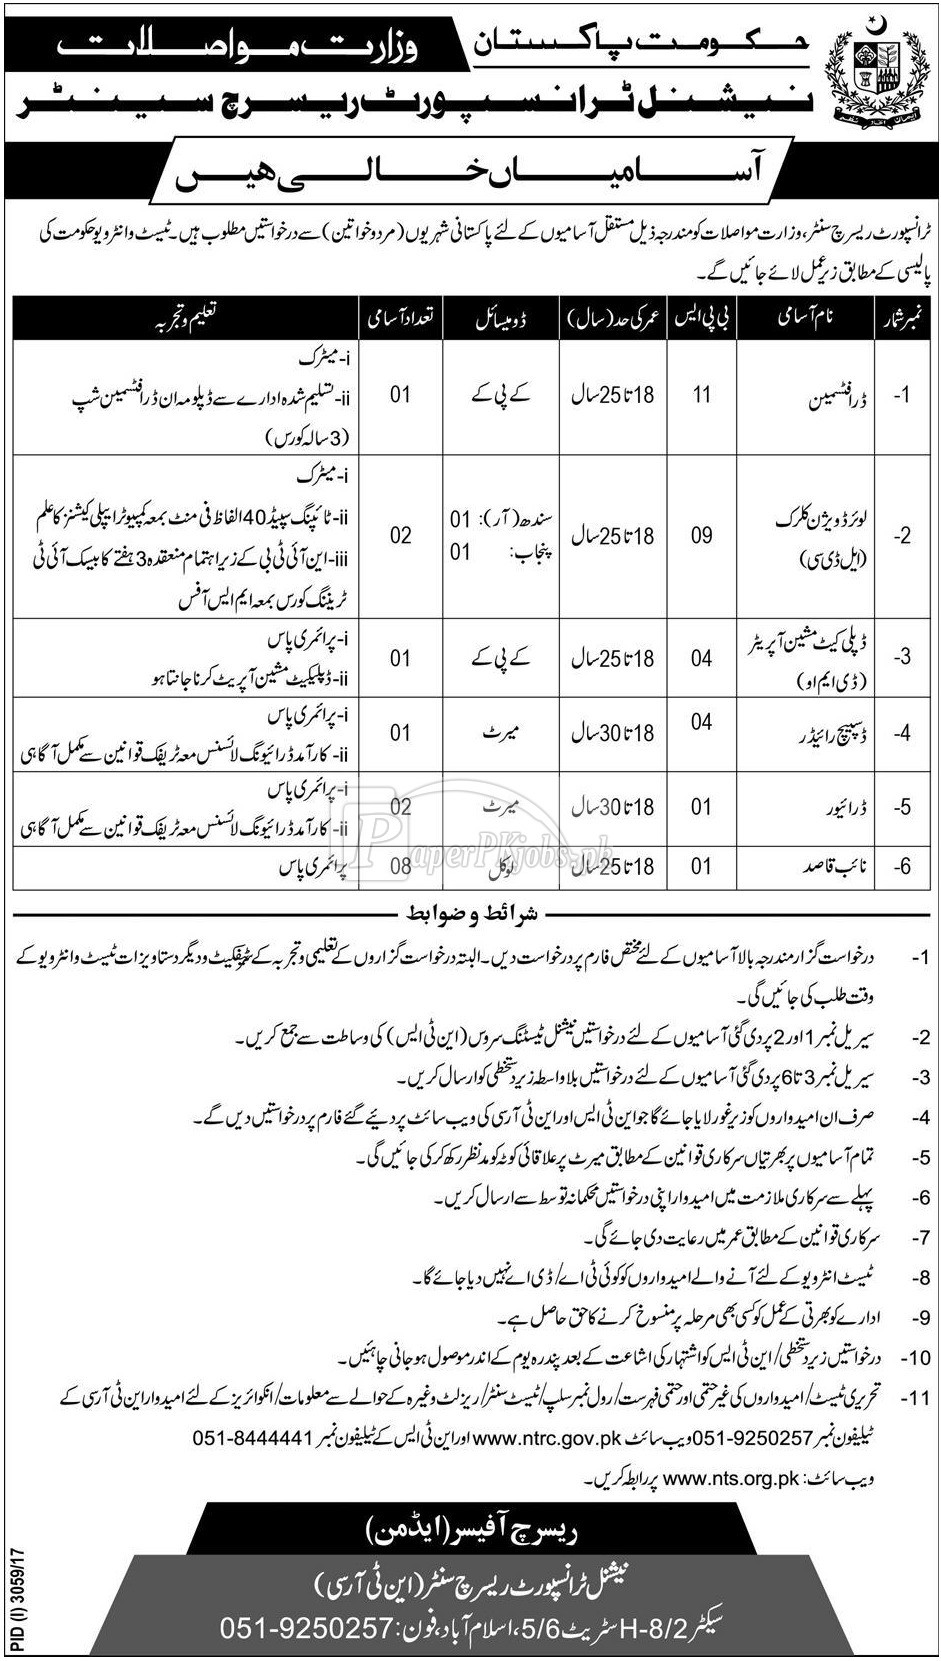 National Transport Research Center NTRC NTS Jobs 2017